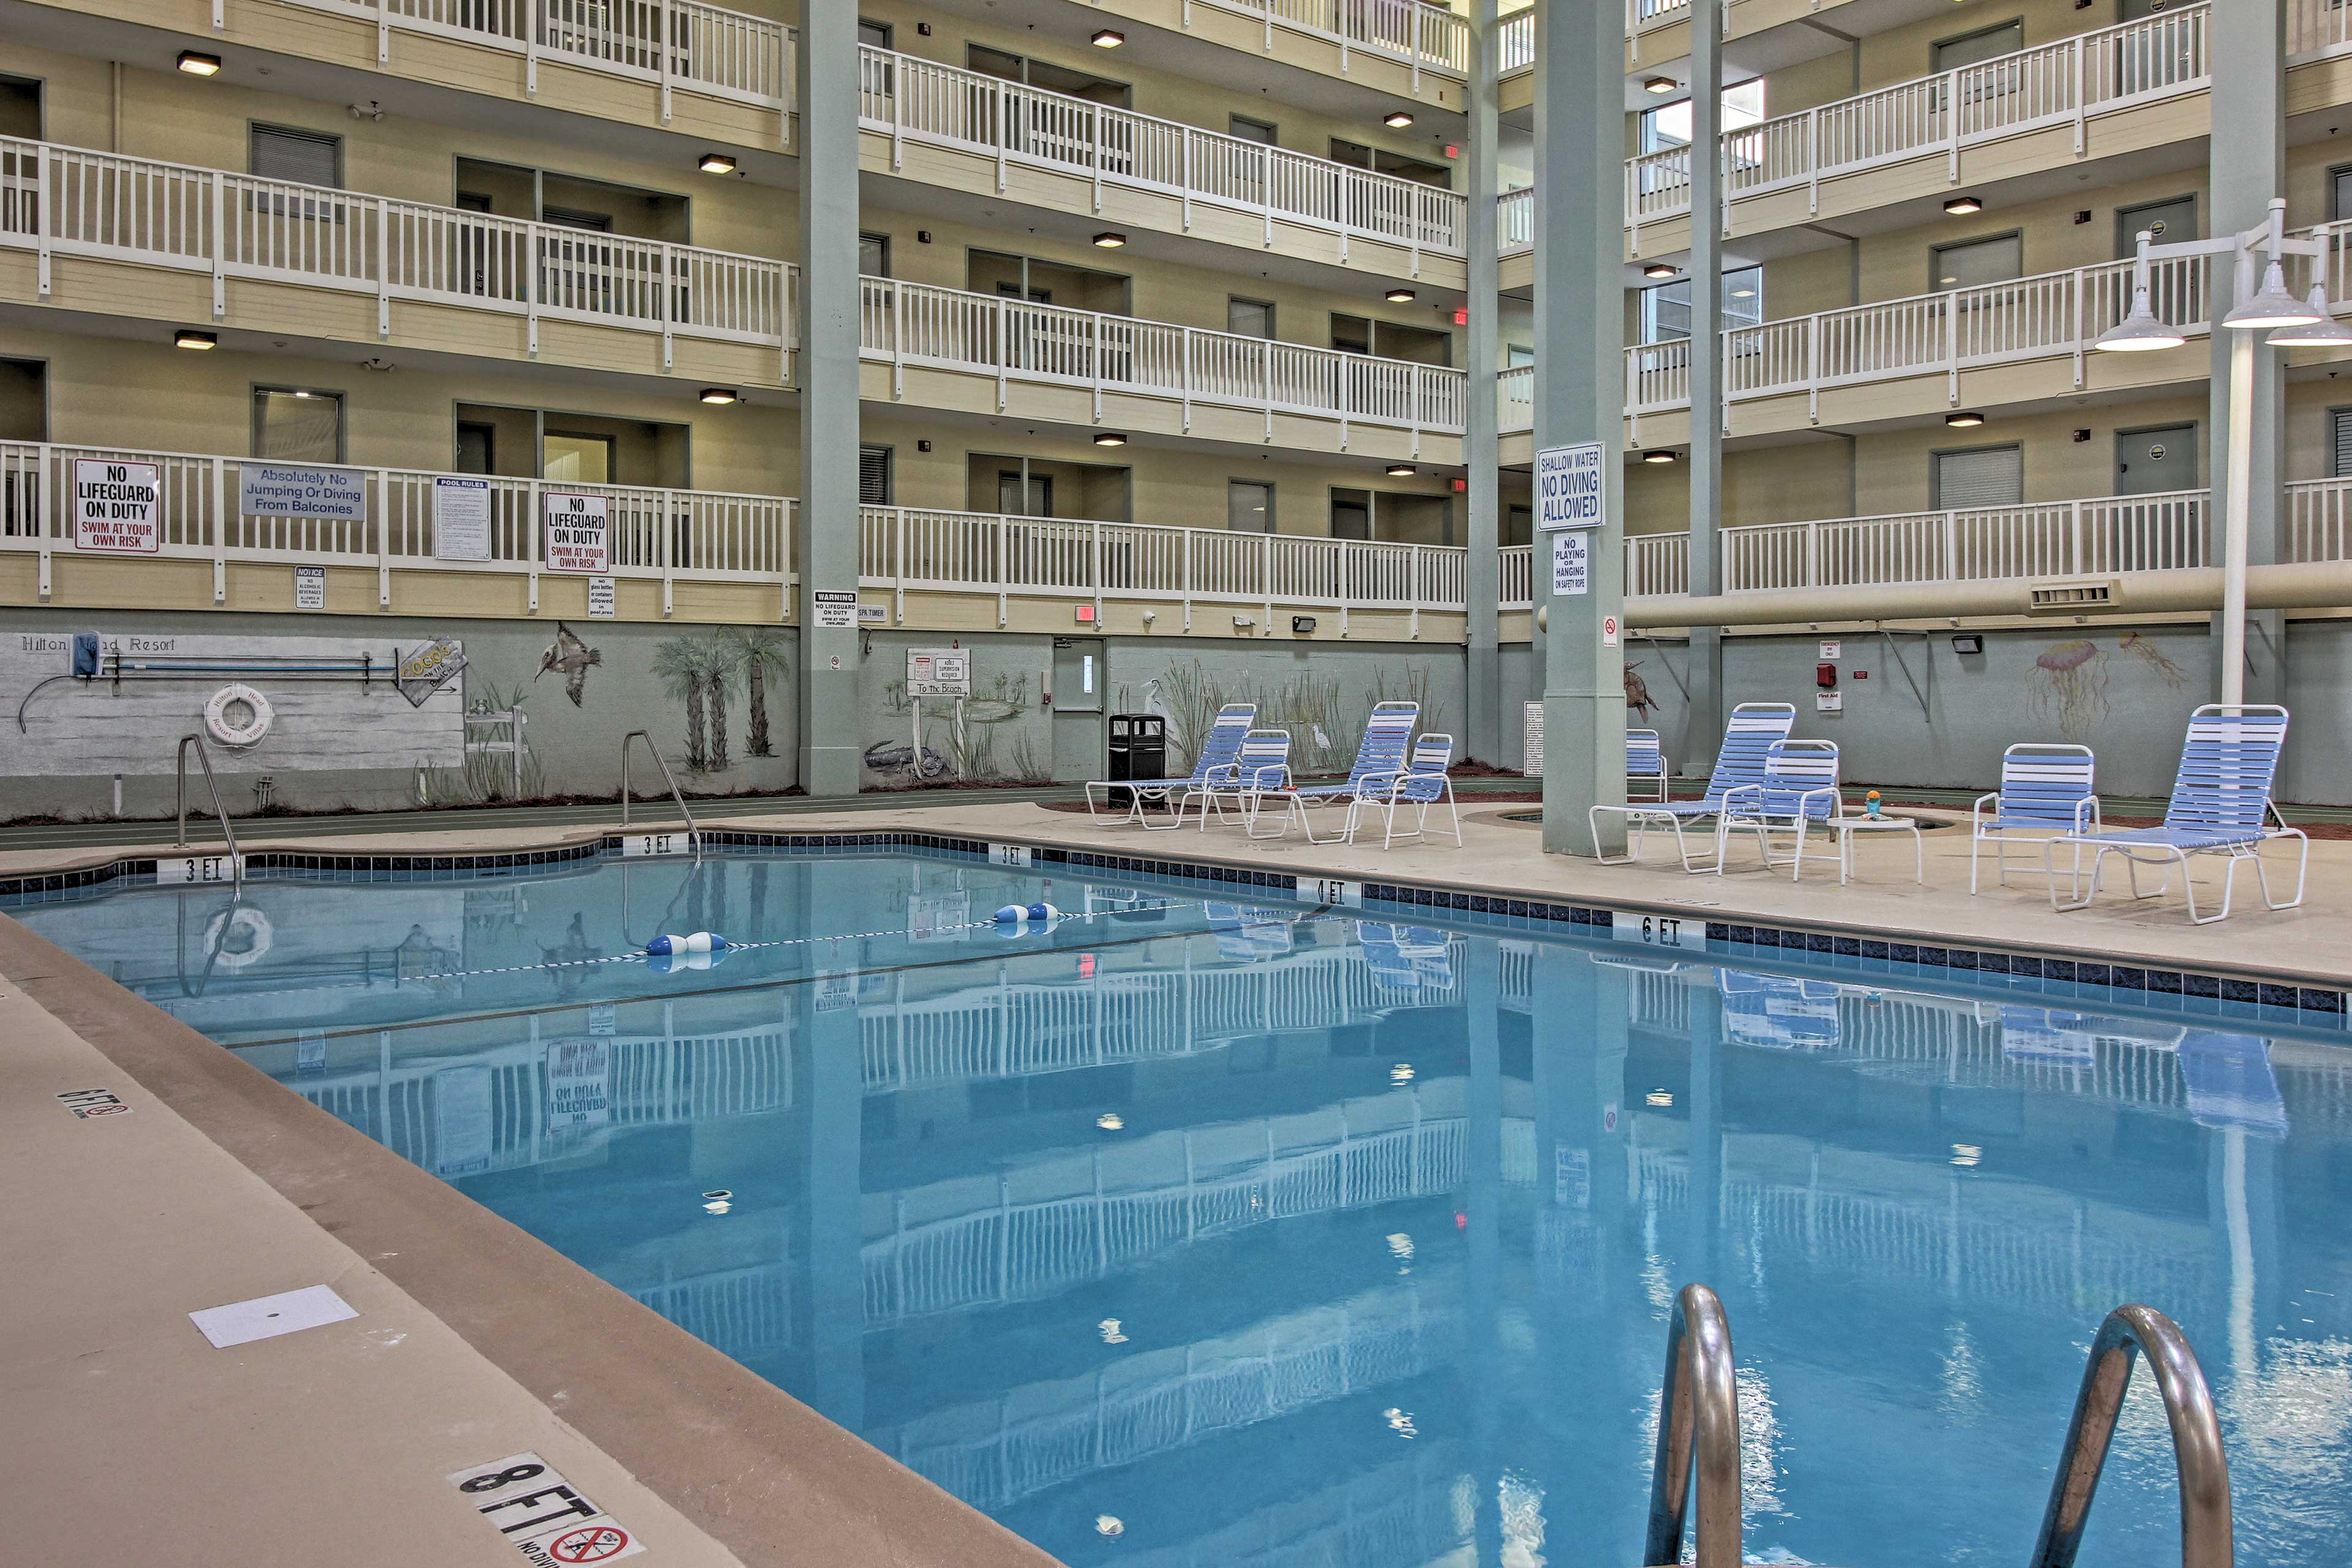 Take a dip in the community pool - found just downstairs from the condo!